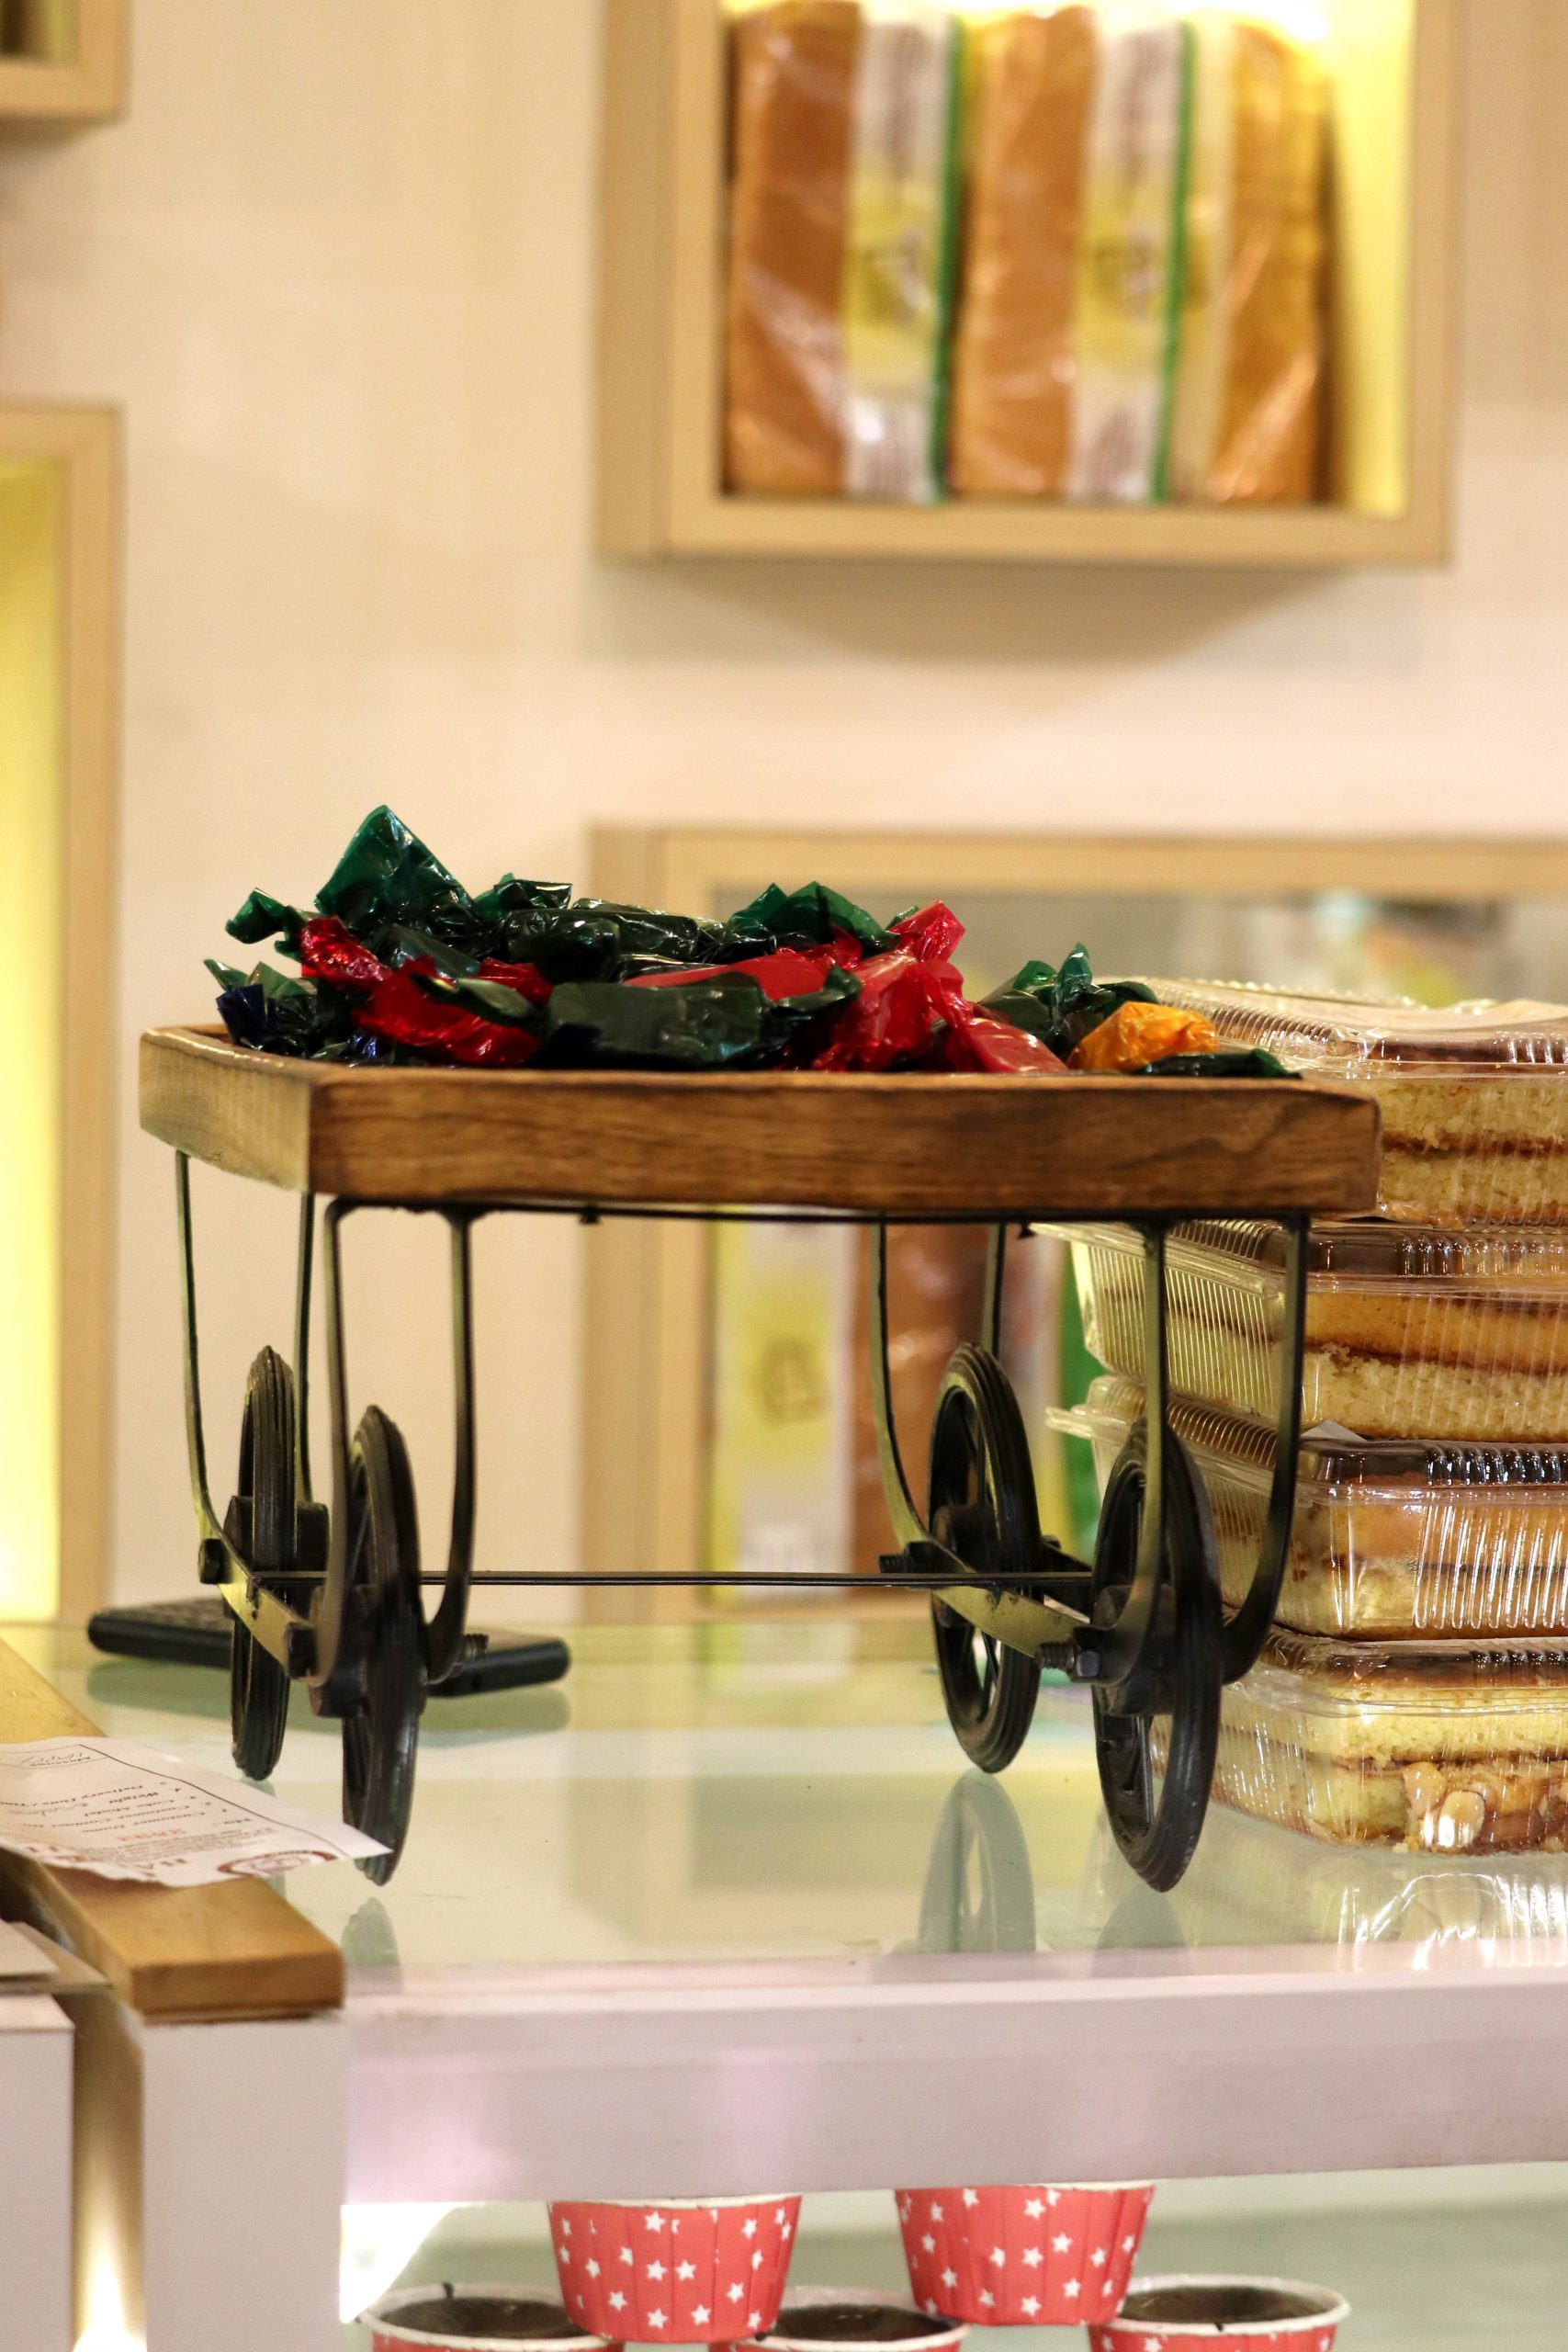 The chocolate room and the candy cart